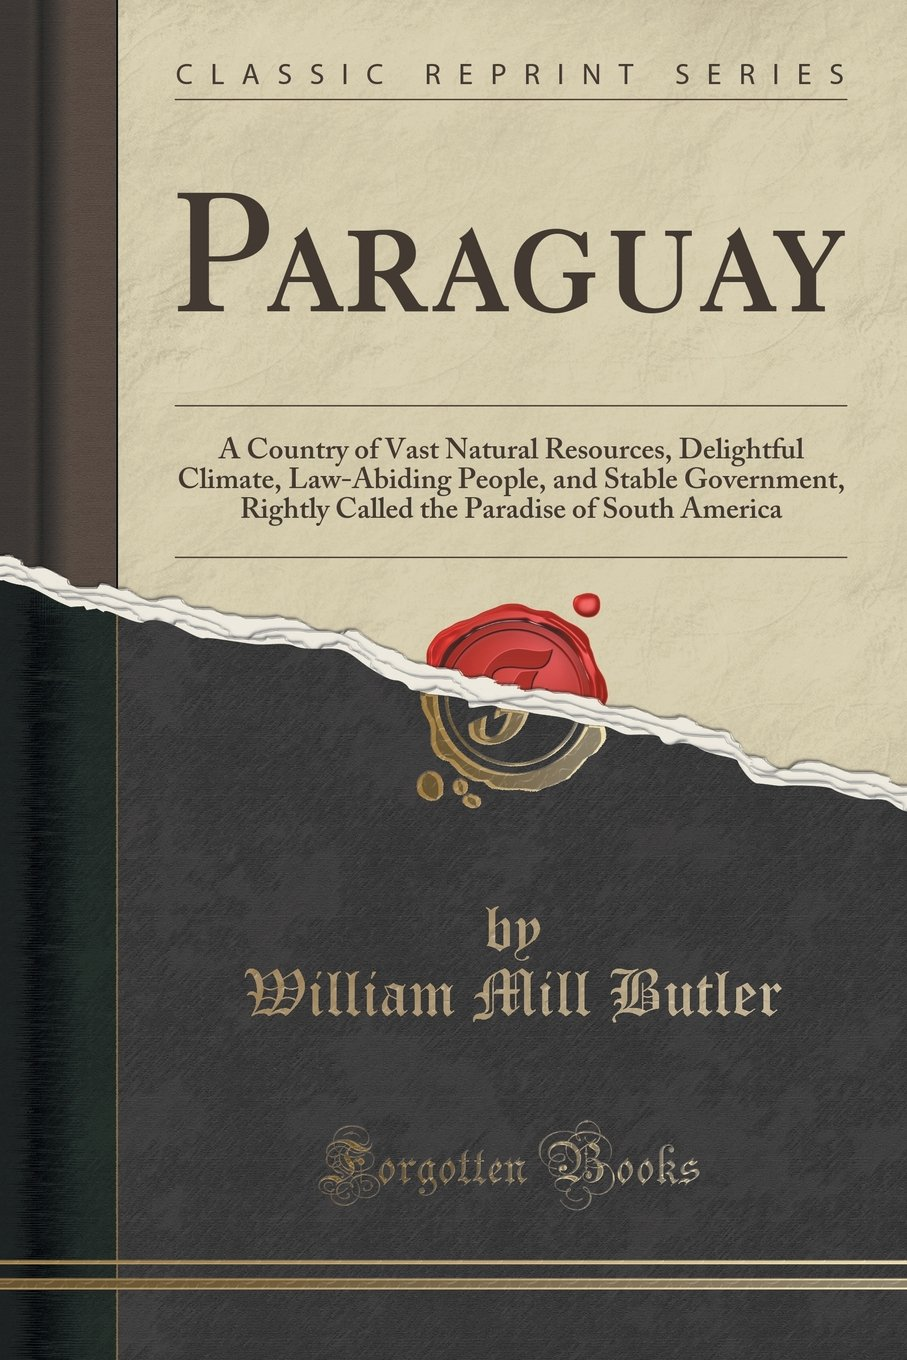 Paraguay: A Country of Vast Natural Resources, Delightful Climate, Law-Abiding People, and Stable Government, Rightly Called the Paradise of South America (Classic Reprint) ebook